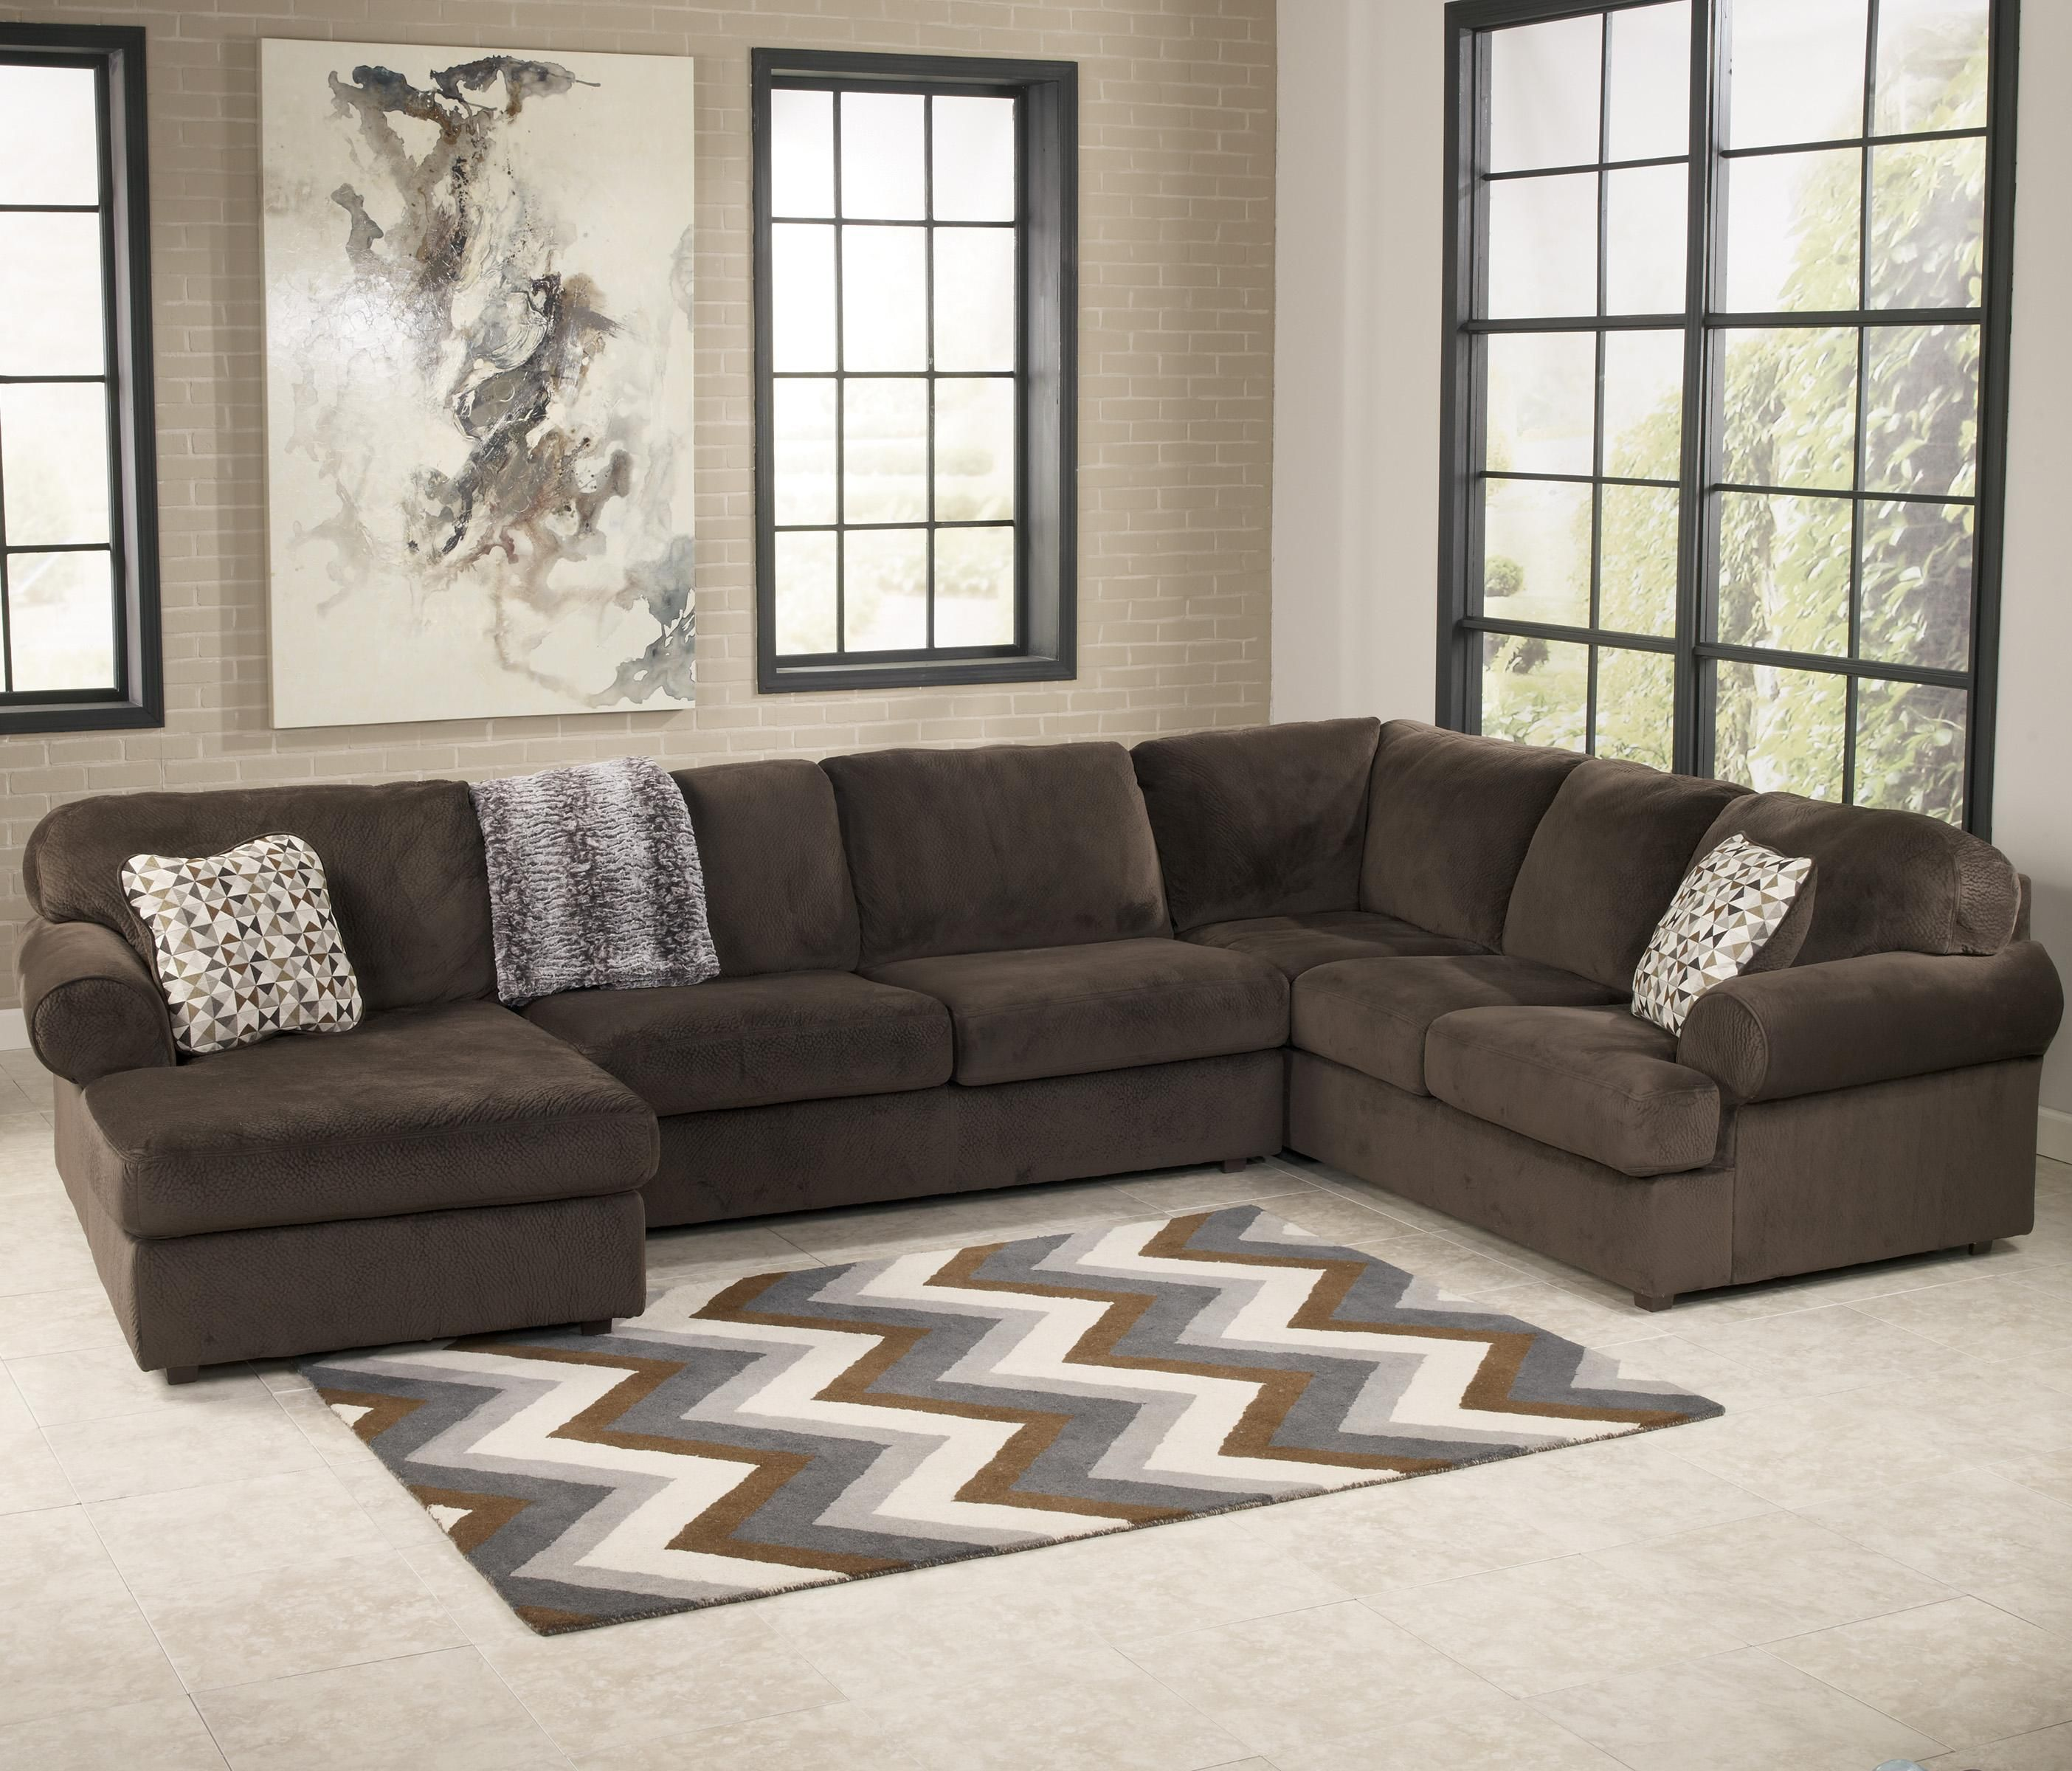 Attractive Signature Design By Ashley Jessa Place   Chocolate Casual Sectional Sofa  With Left Chaise   Miskelly Furniture   Sofa Sectional Jackson, Mississippi